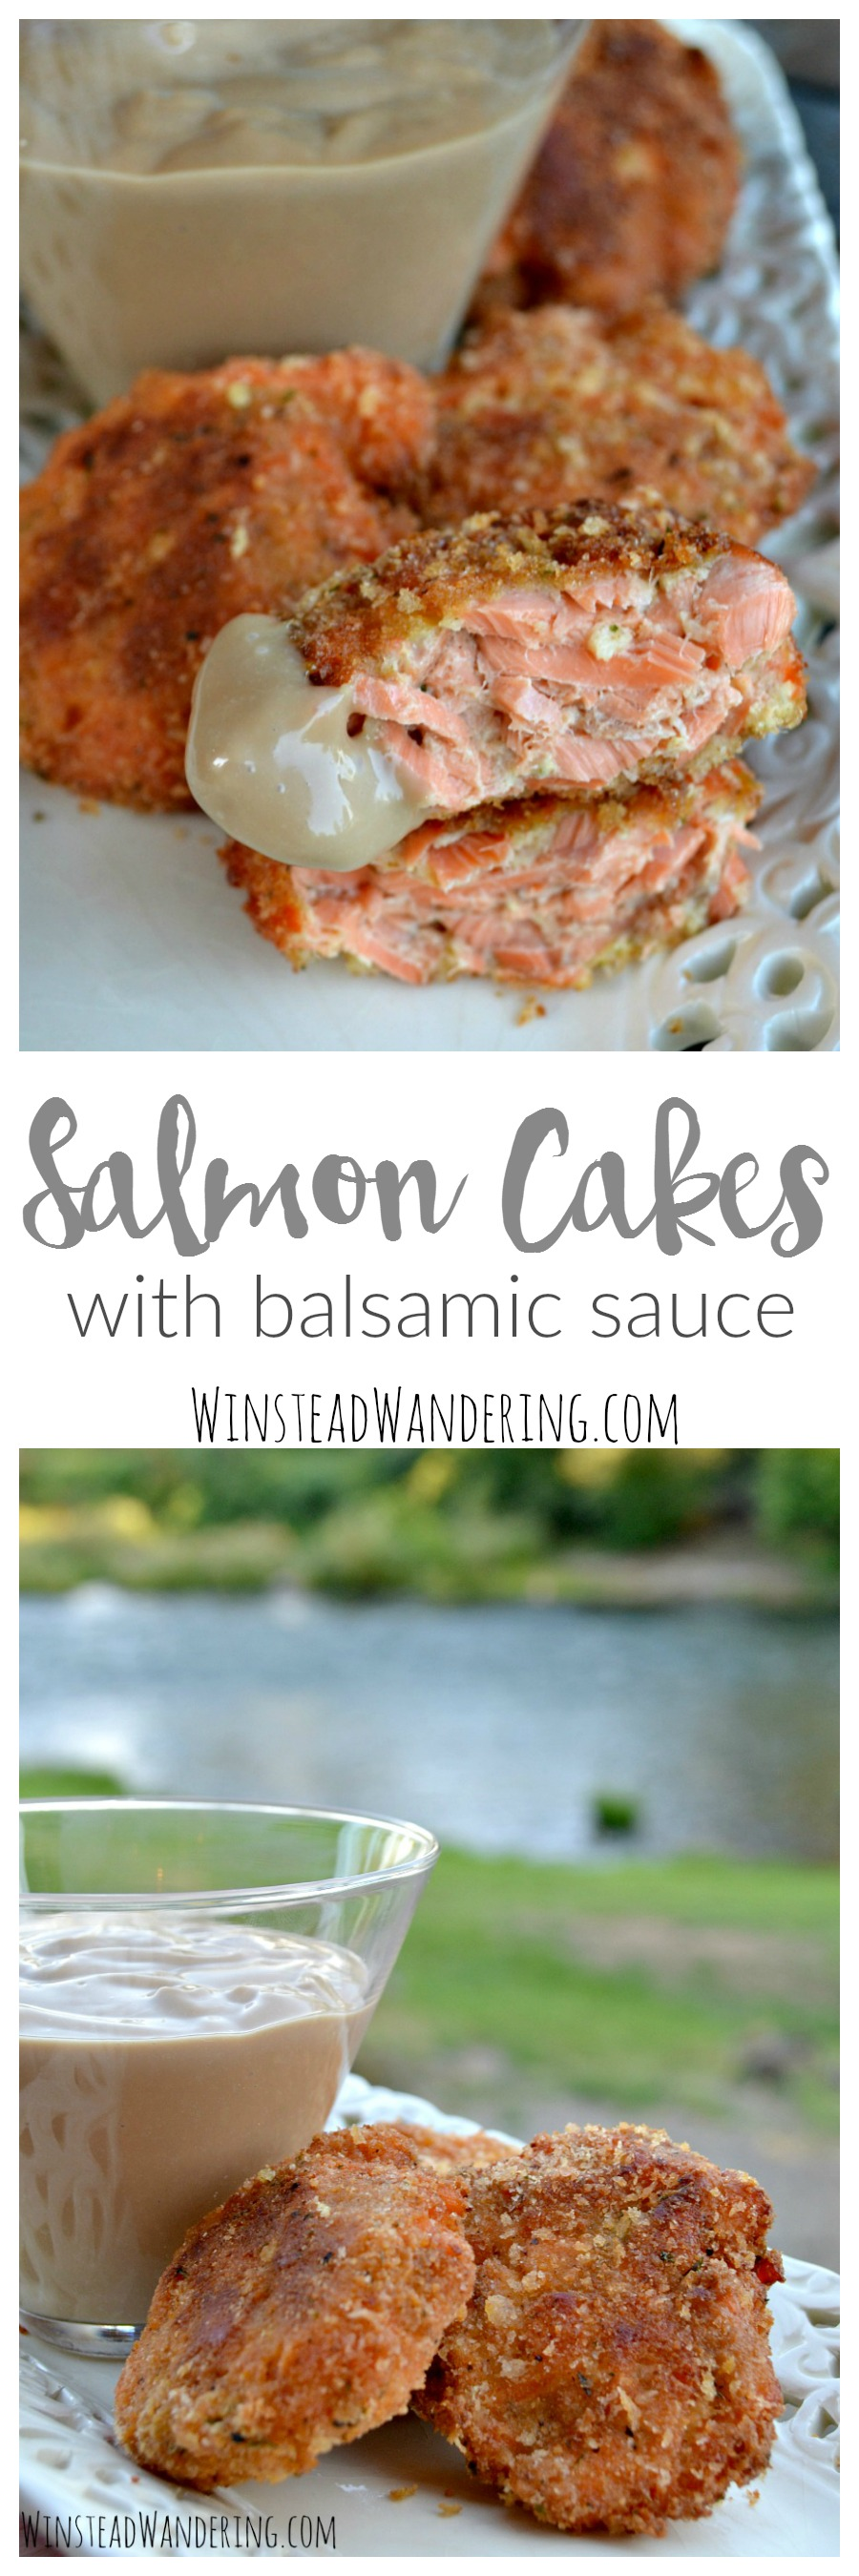 This easy and delectable recipe combines fresh fish with a few simple ingredients to make salmon cakes with balsamic sauce.